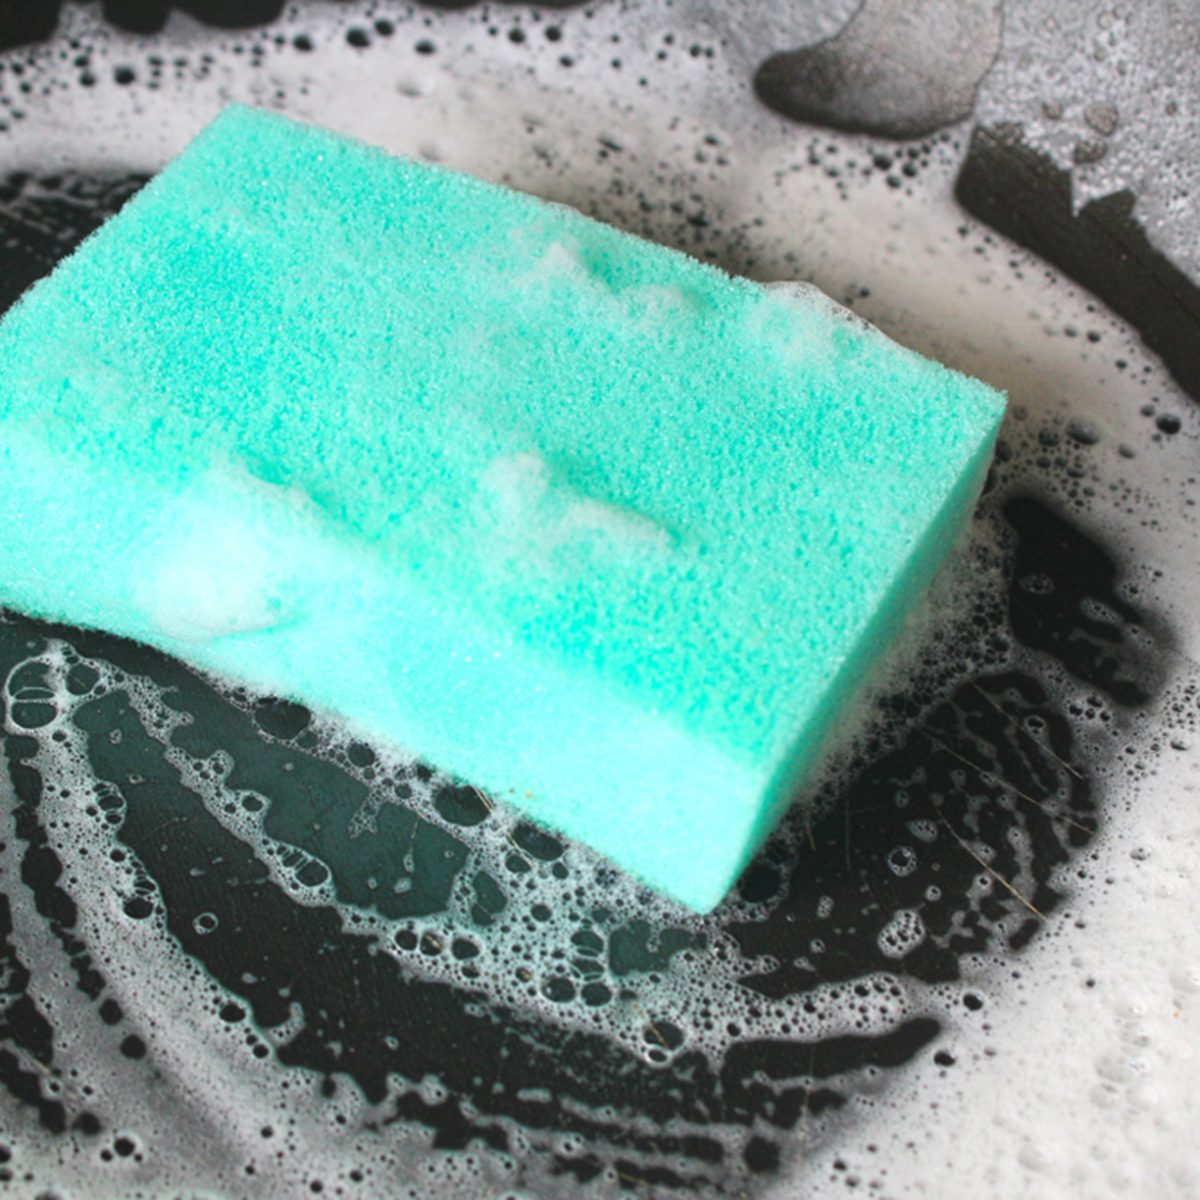 Cleaning Sponge with foam on a frying pan.